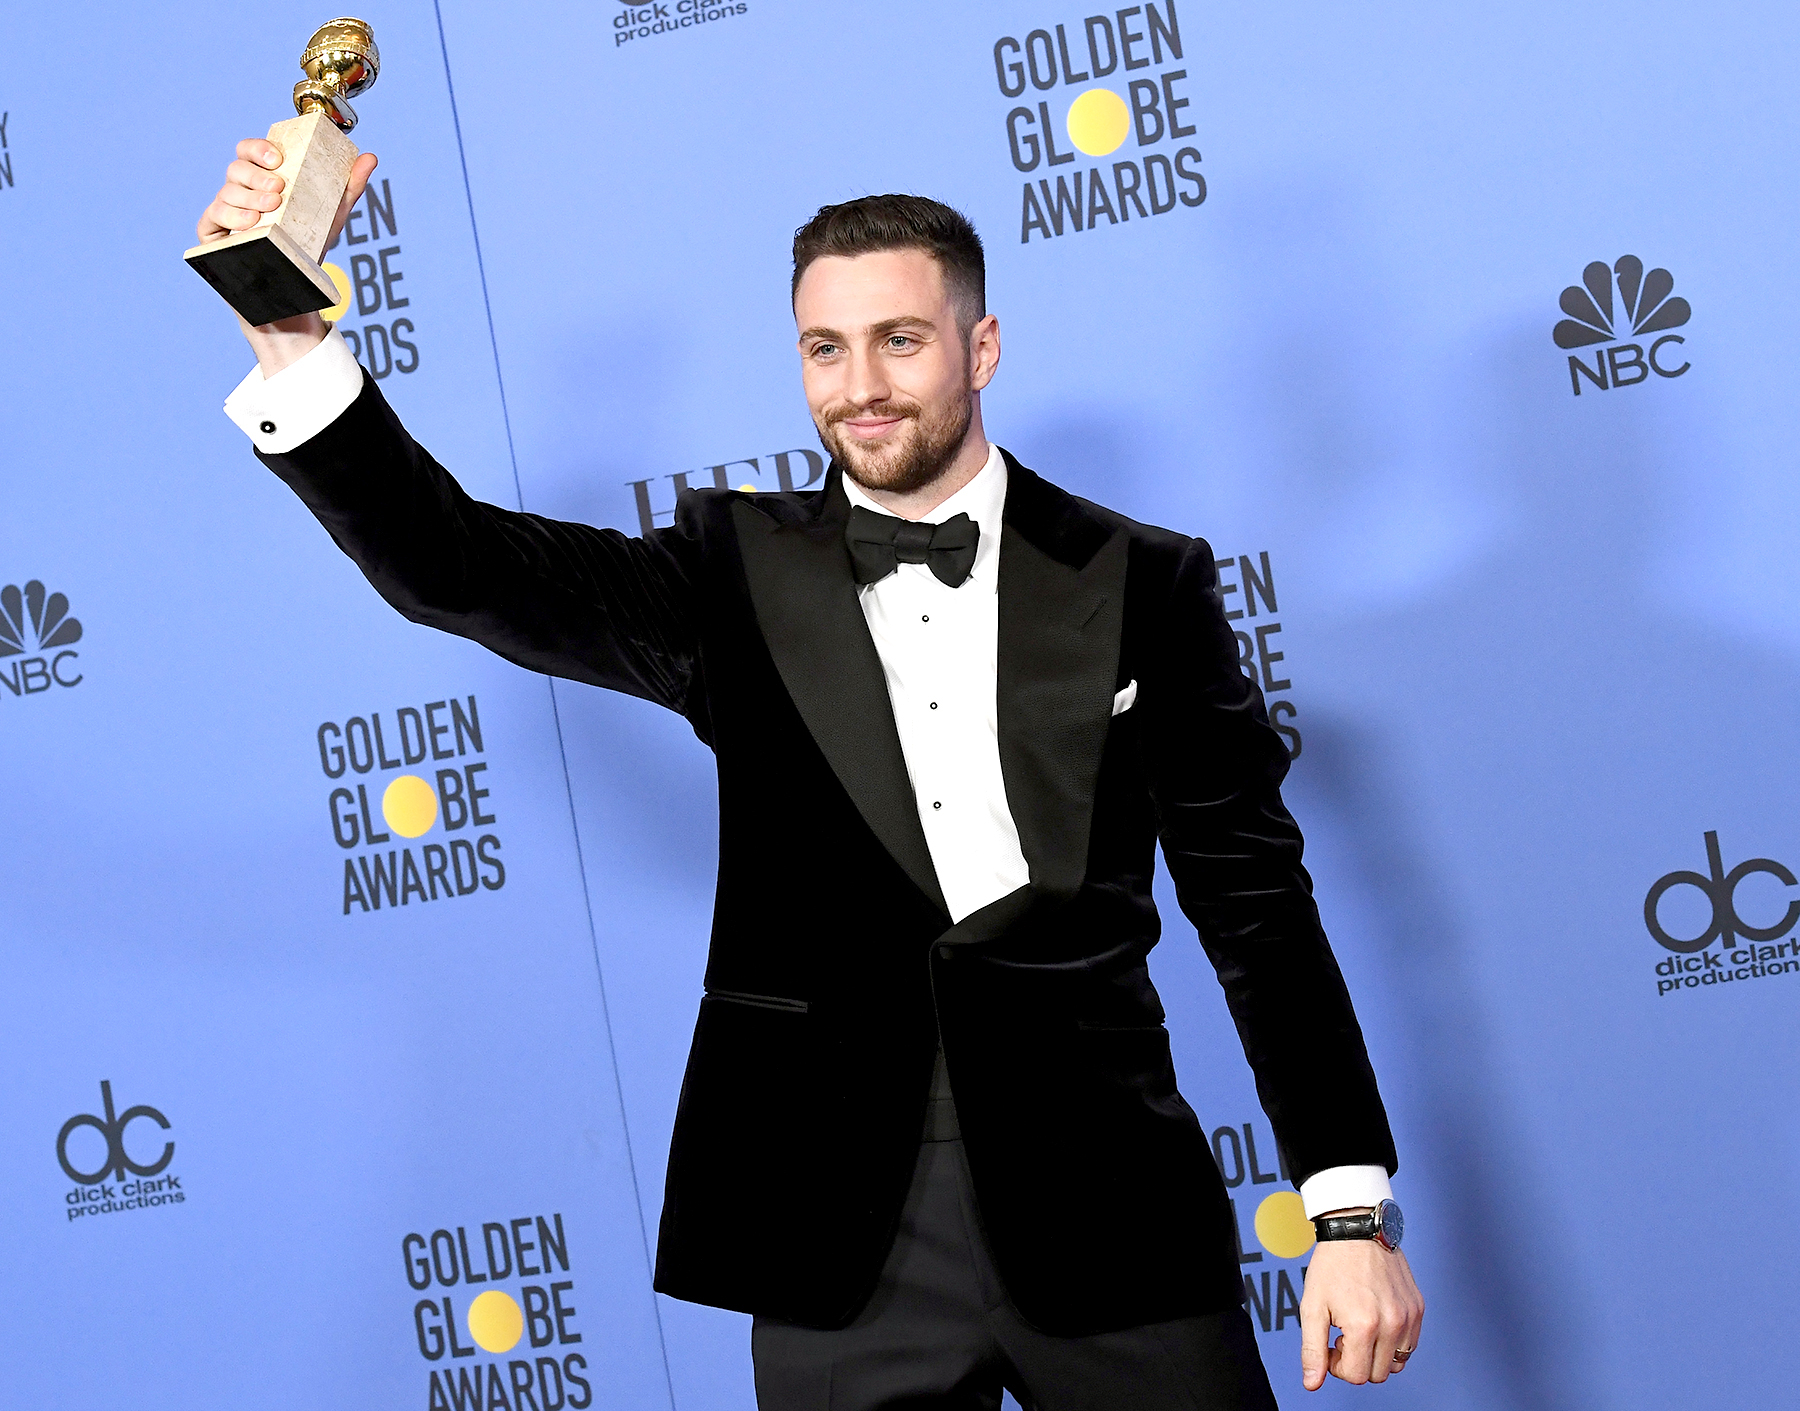 Aaron Taylor-Johnson, winner of Best Performance by an Actor in a Supporting Role for 'Nocturnal Animals', poses in the press room at the 74th Annual Golden Globe Awards.